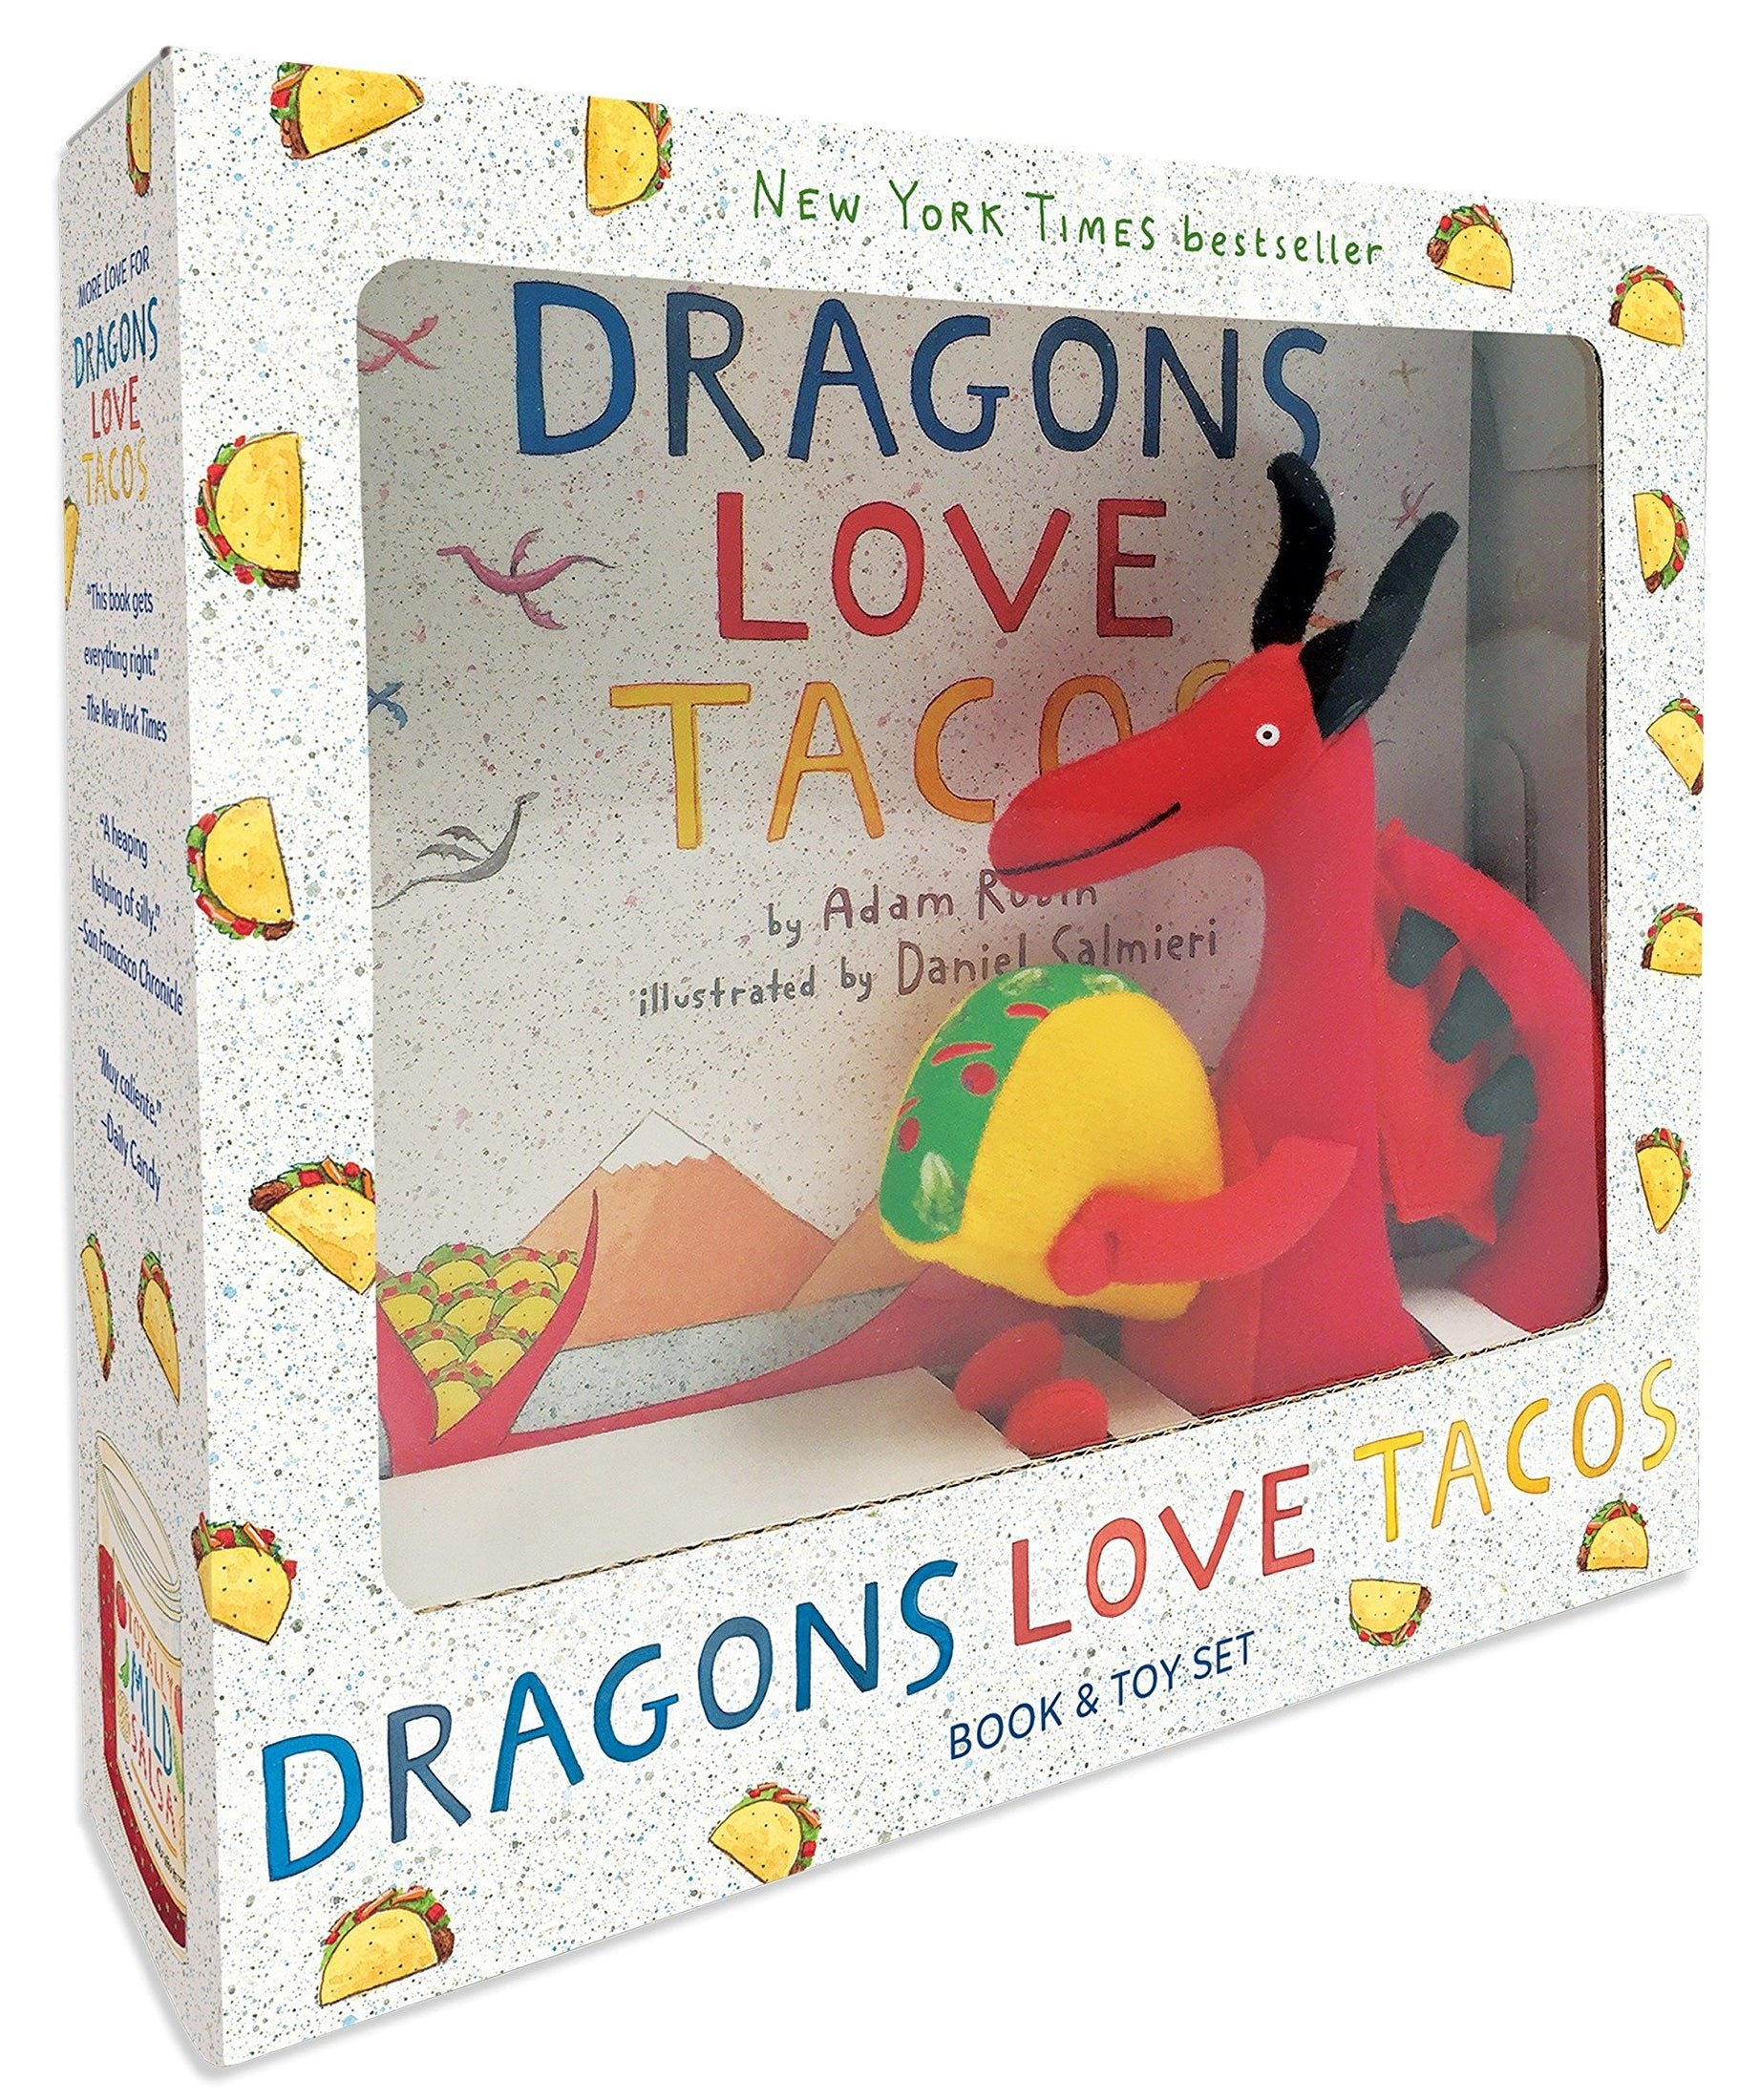 Dragons Love Tacos: Toy & Book Set